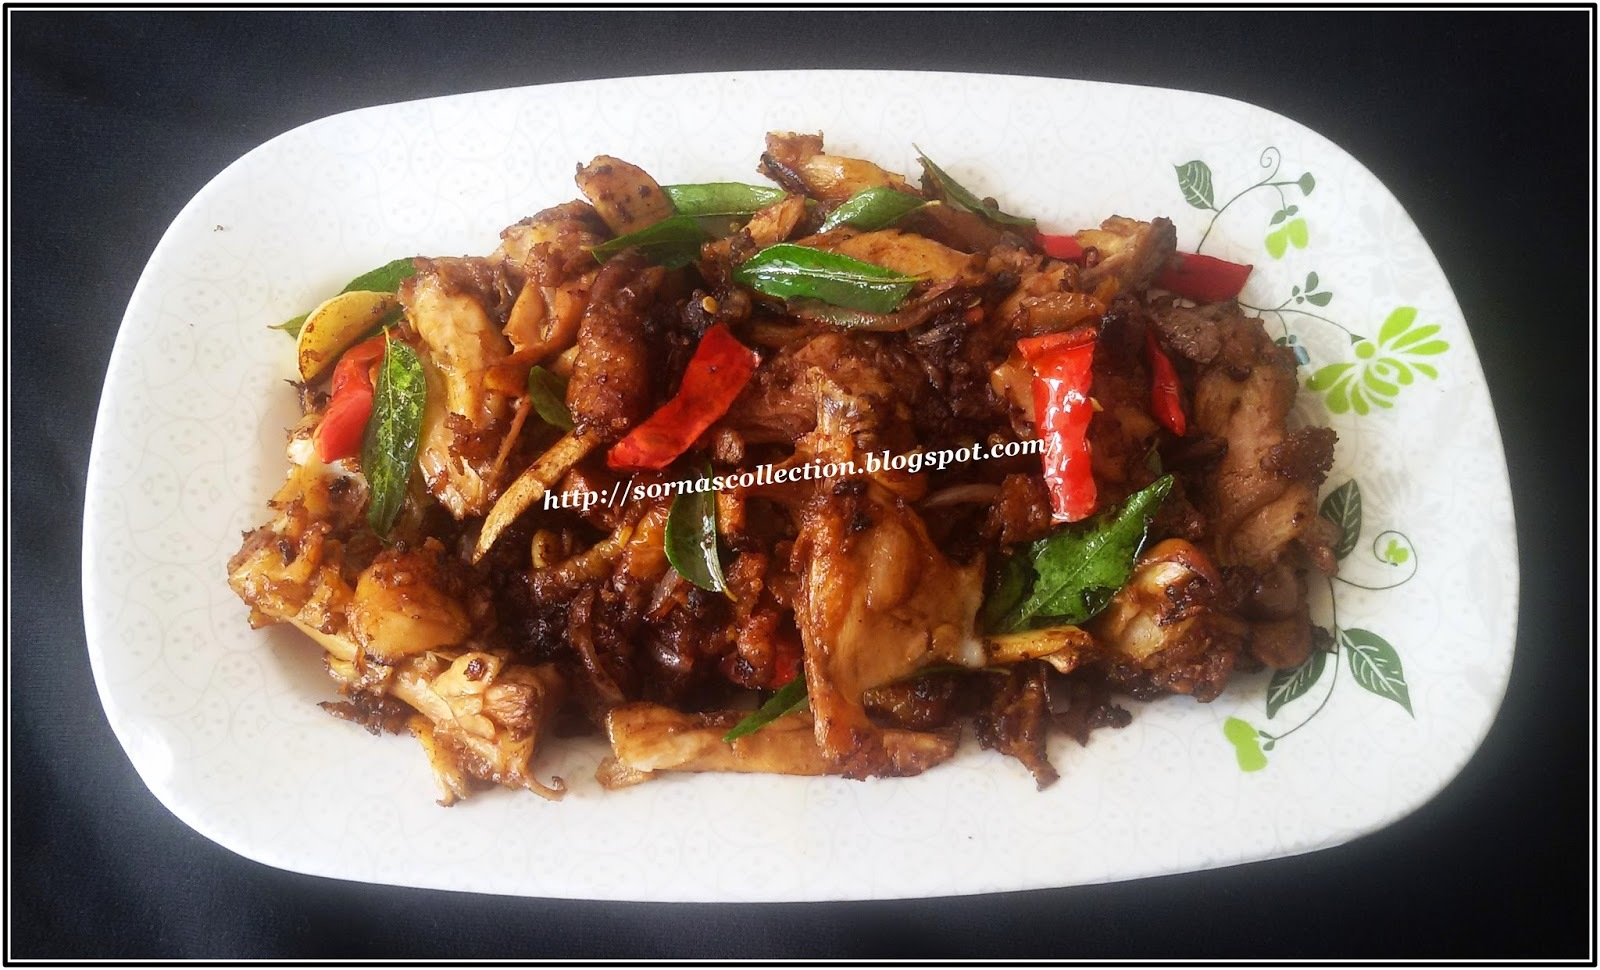 STIR-FRIED LEFTOVER FRIED CHICKEN